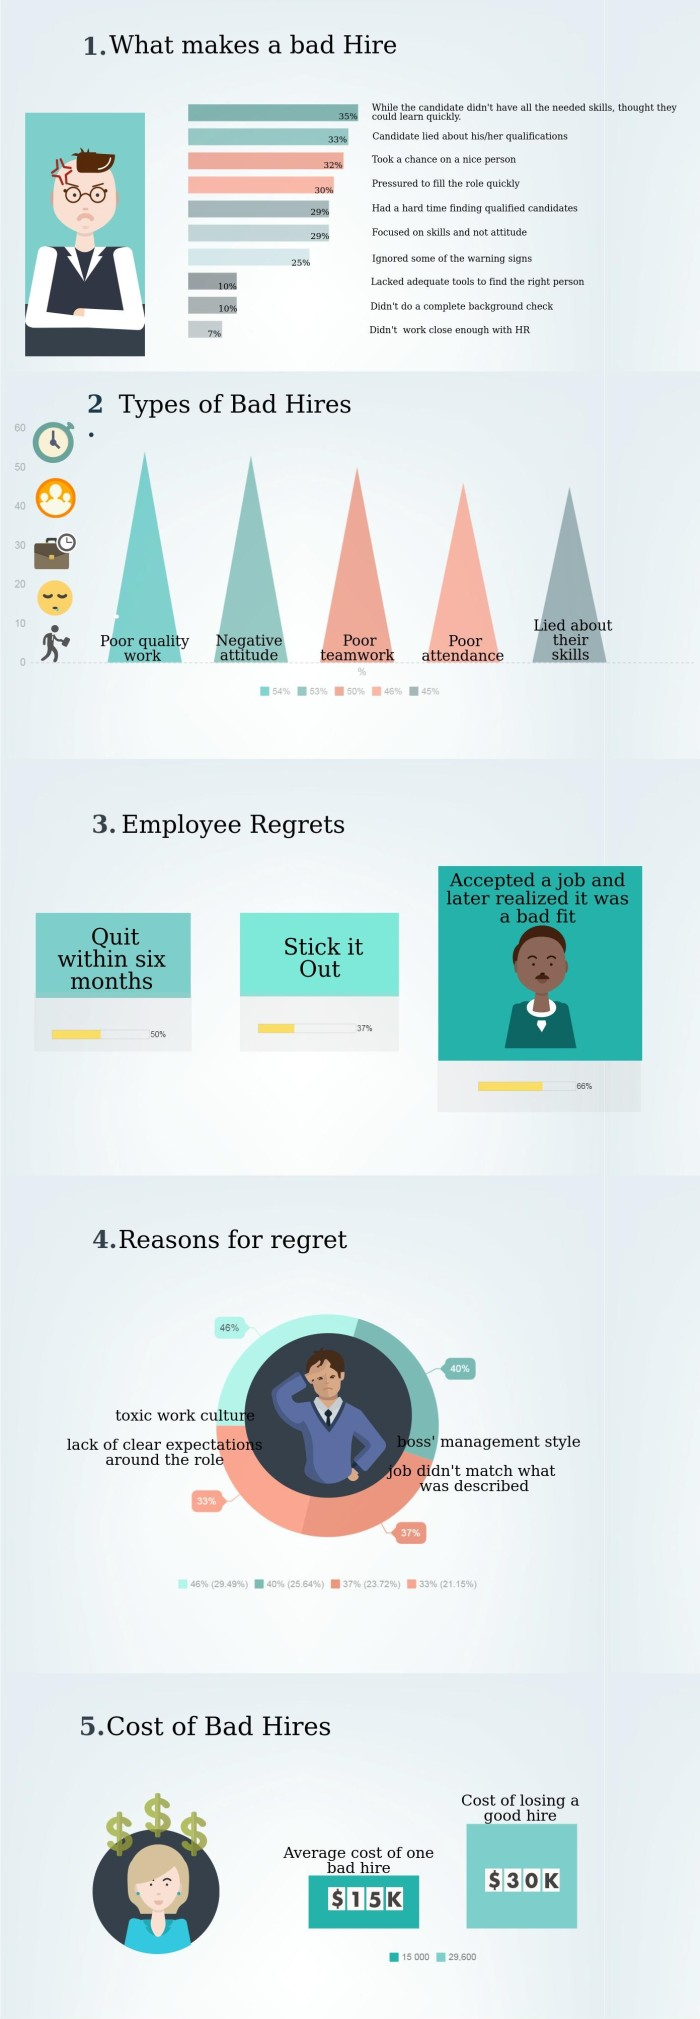 Bridgette_12_13_2017_cost of bad hire_infograpgic_English